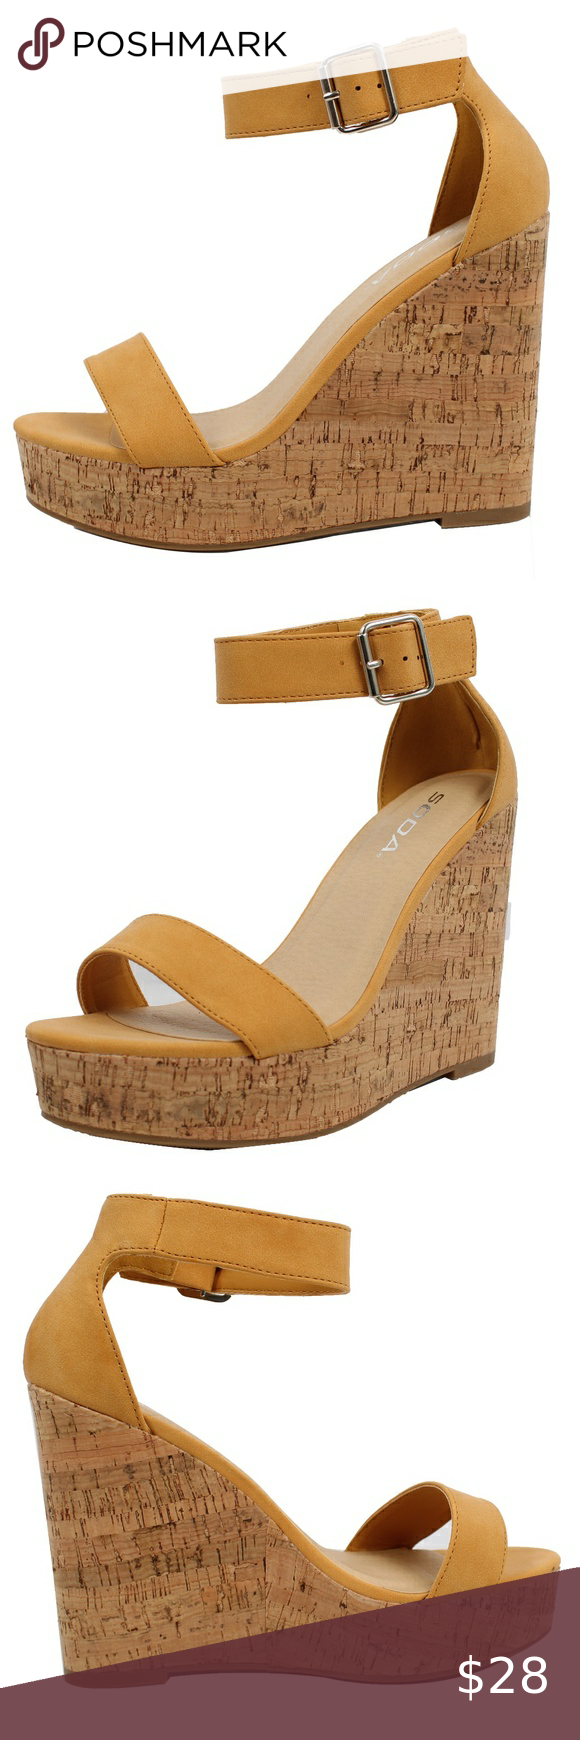 JUSTICE ESPADRILLES BRAIDED WEDGE SIZE SANDALS  SUPER CUTE!! 1,5,7